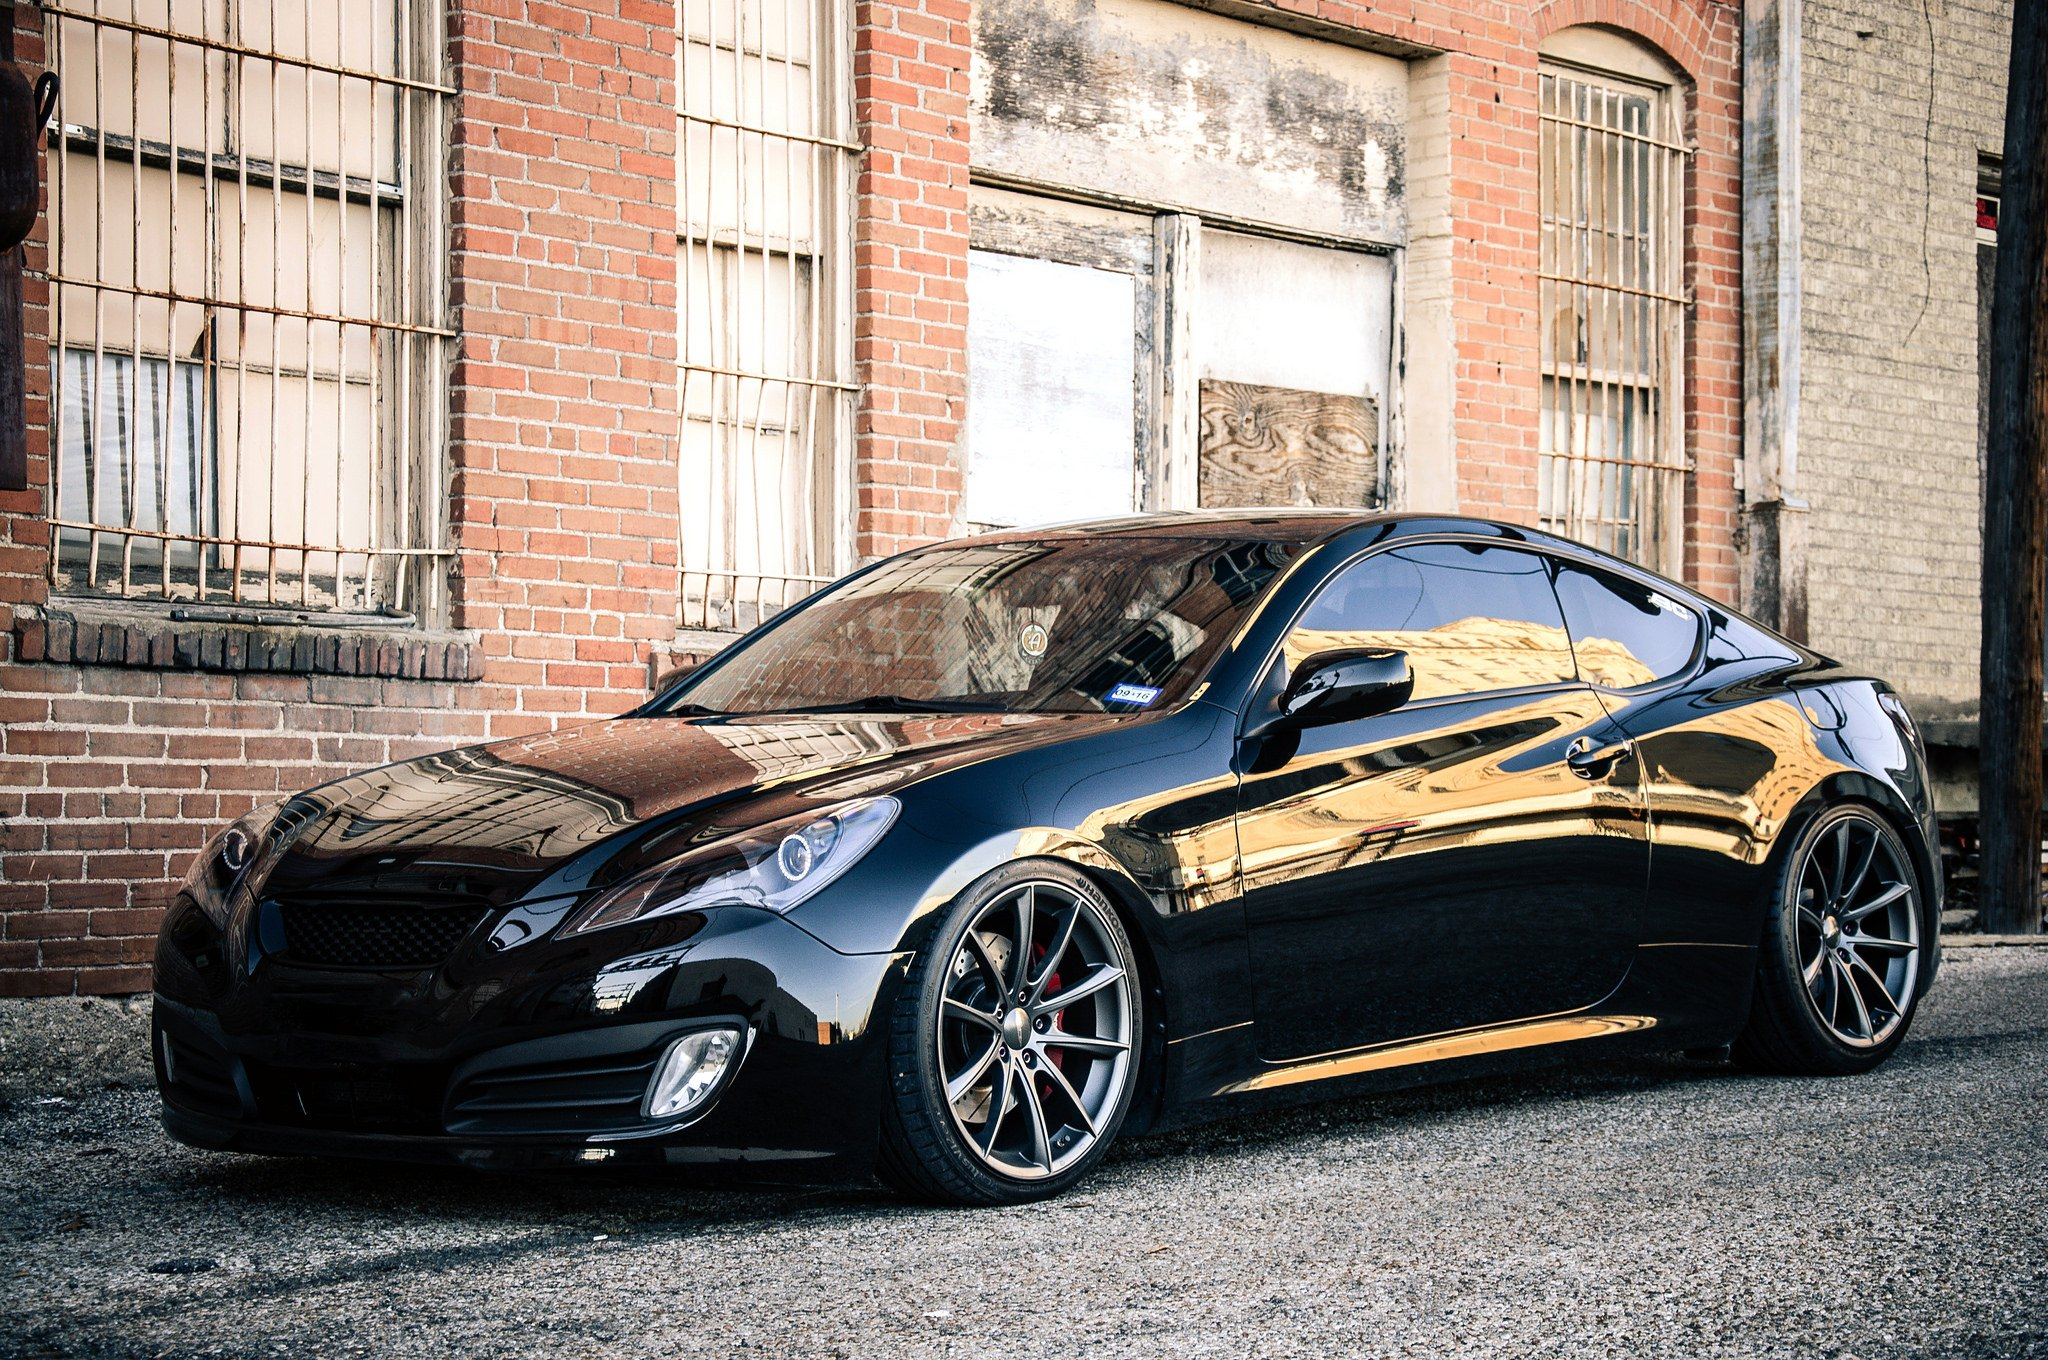 Stanced Hyundai Genesis Coupe On Ace Alloy Wheels Photo By